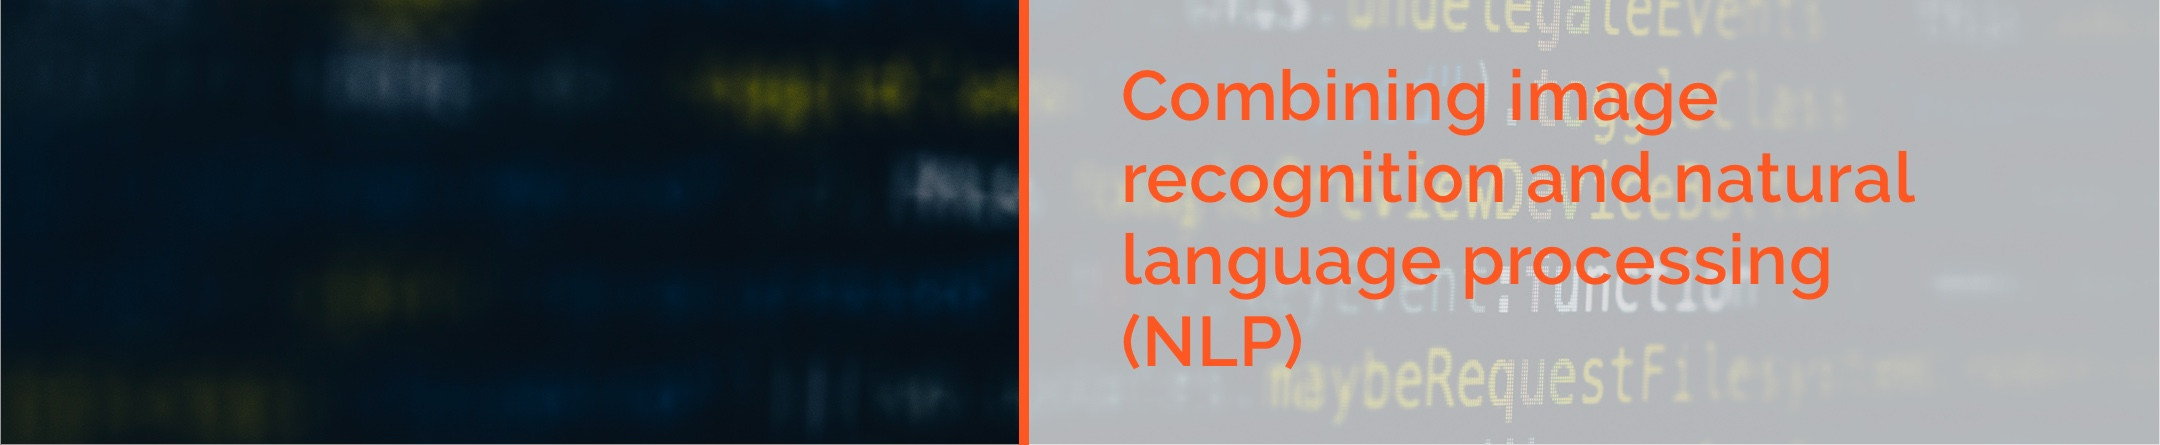 Combining image recognition and natural language processing (NLP)